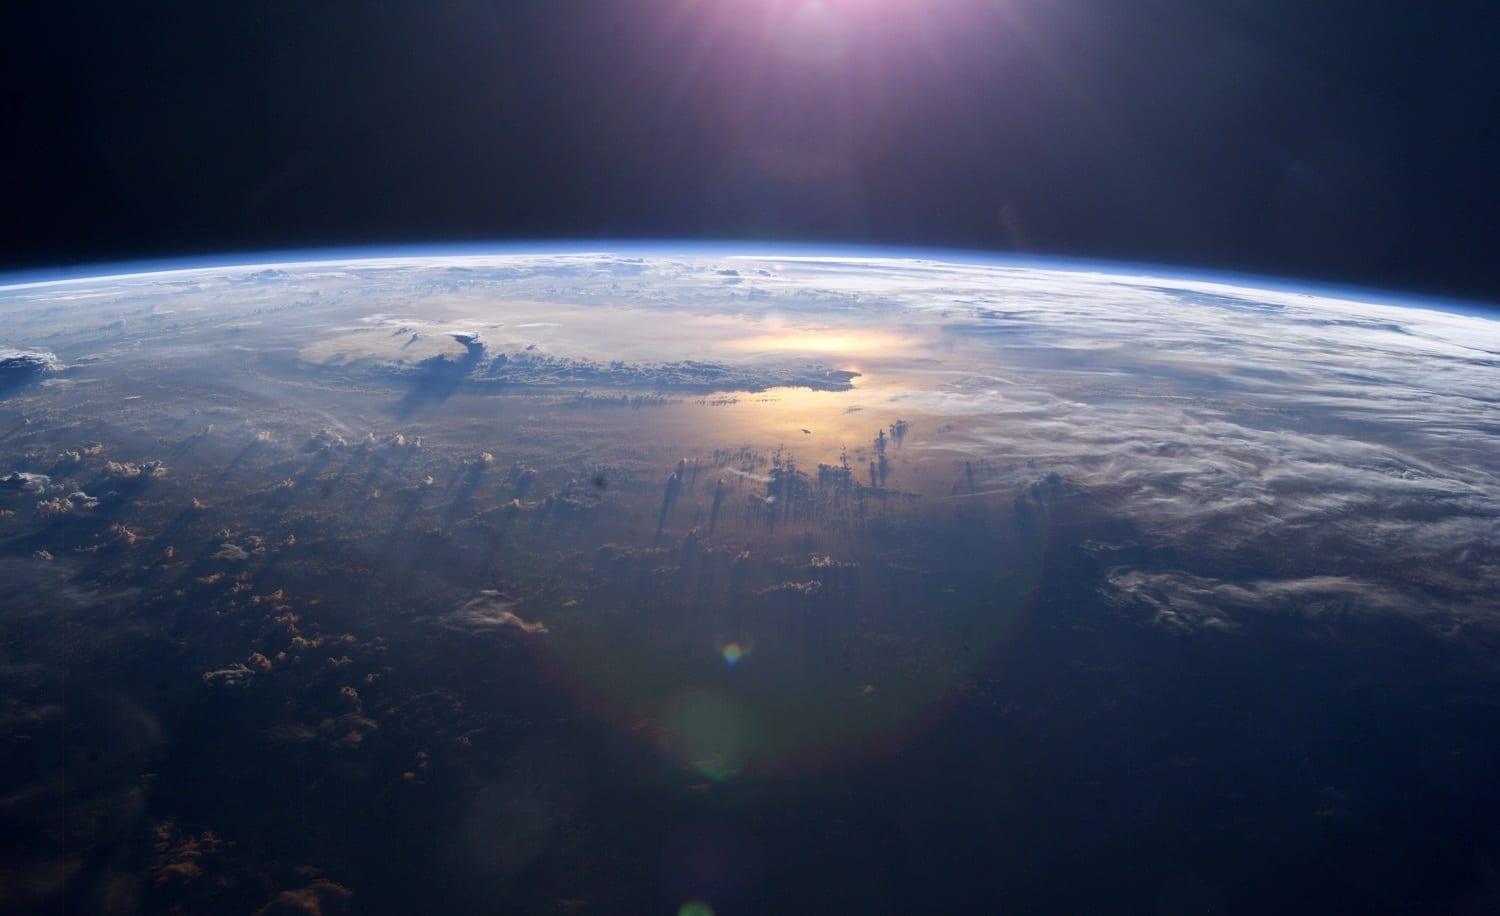 Earth from above showing thunderheads above the ocean reflecting sunlight, photo credit: NASA